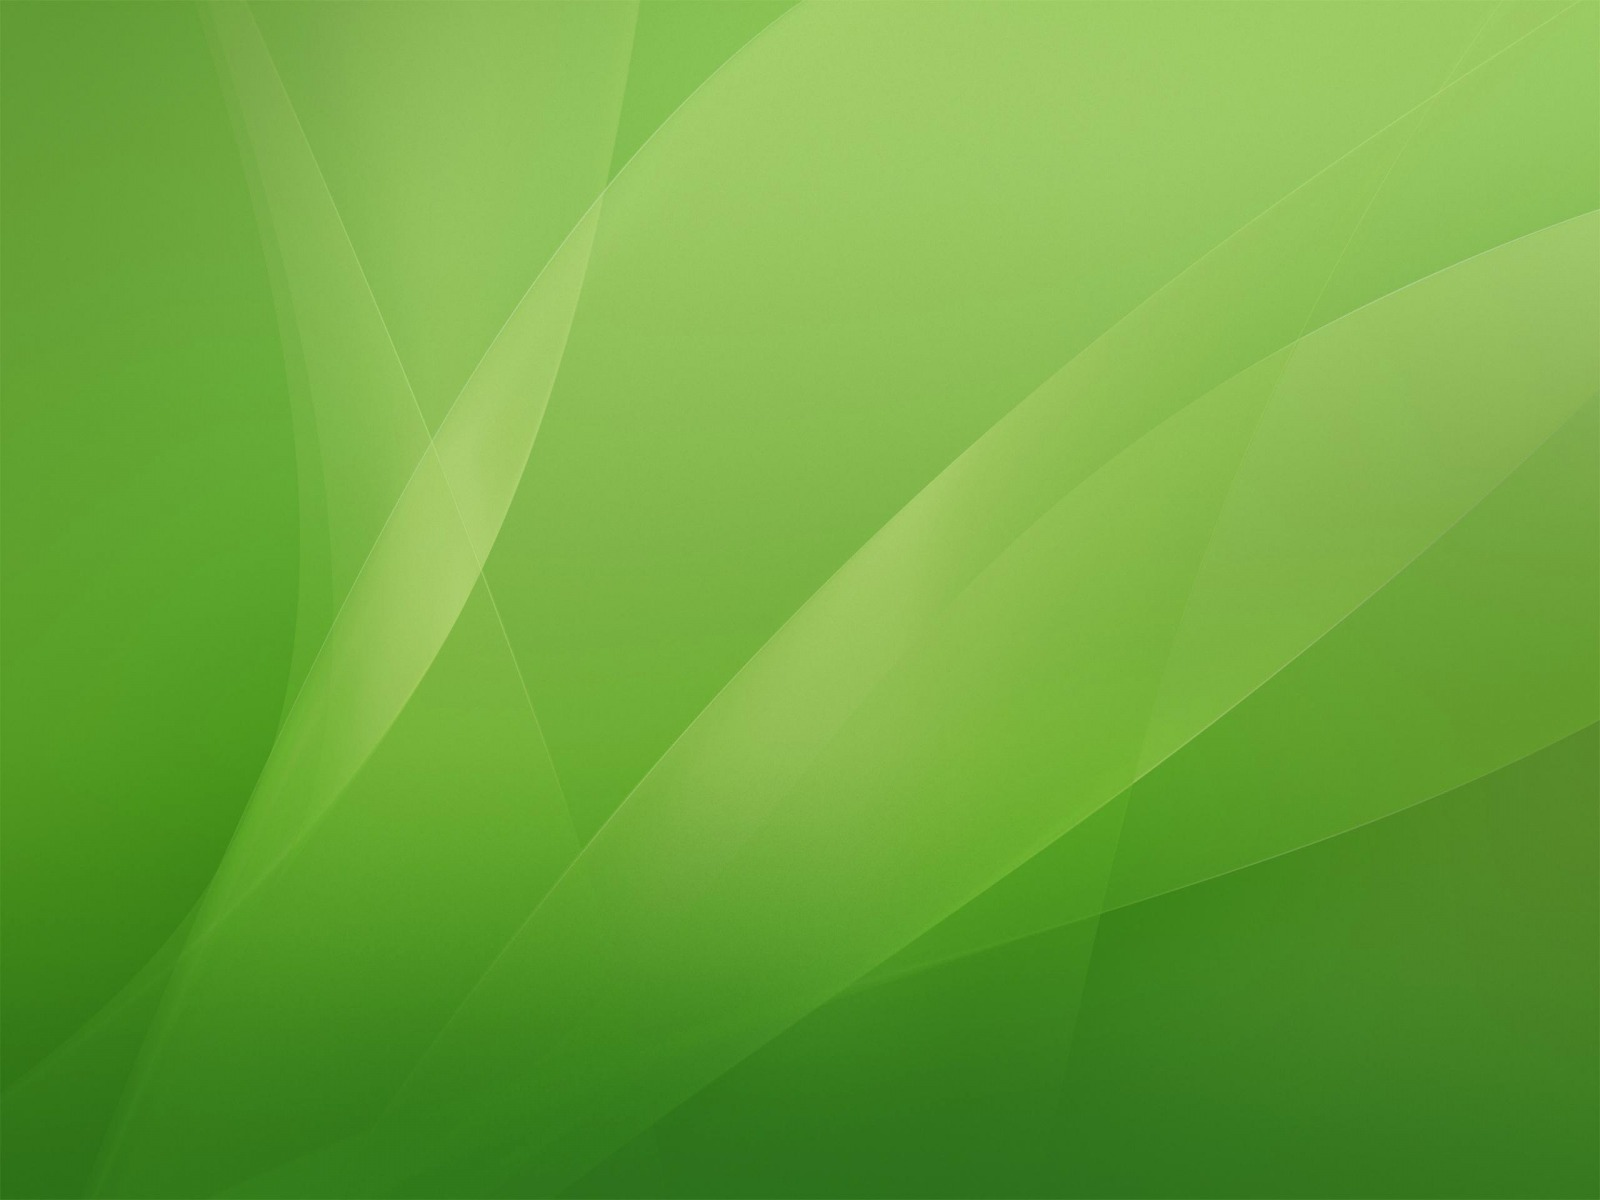 Olive Green Desktop Wallpaper - WallpaperSafari